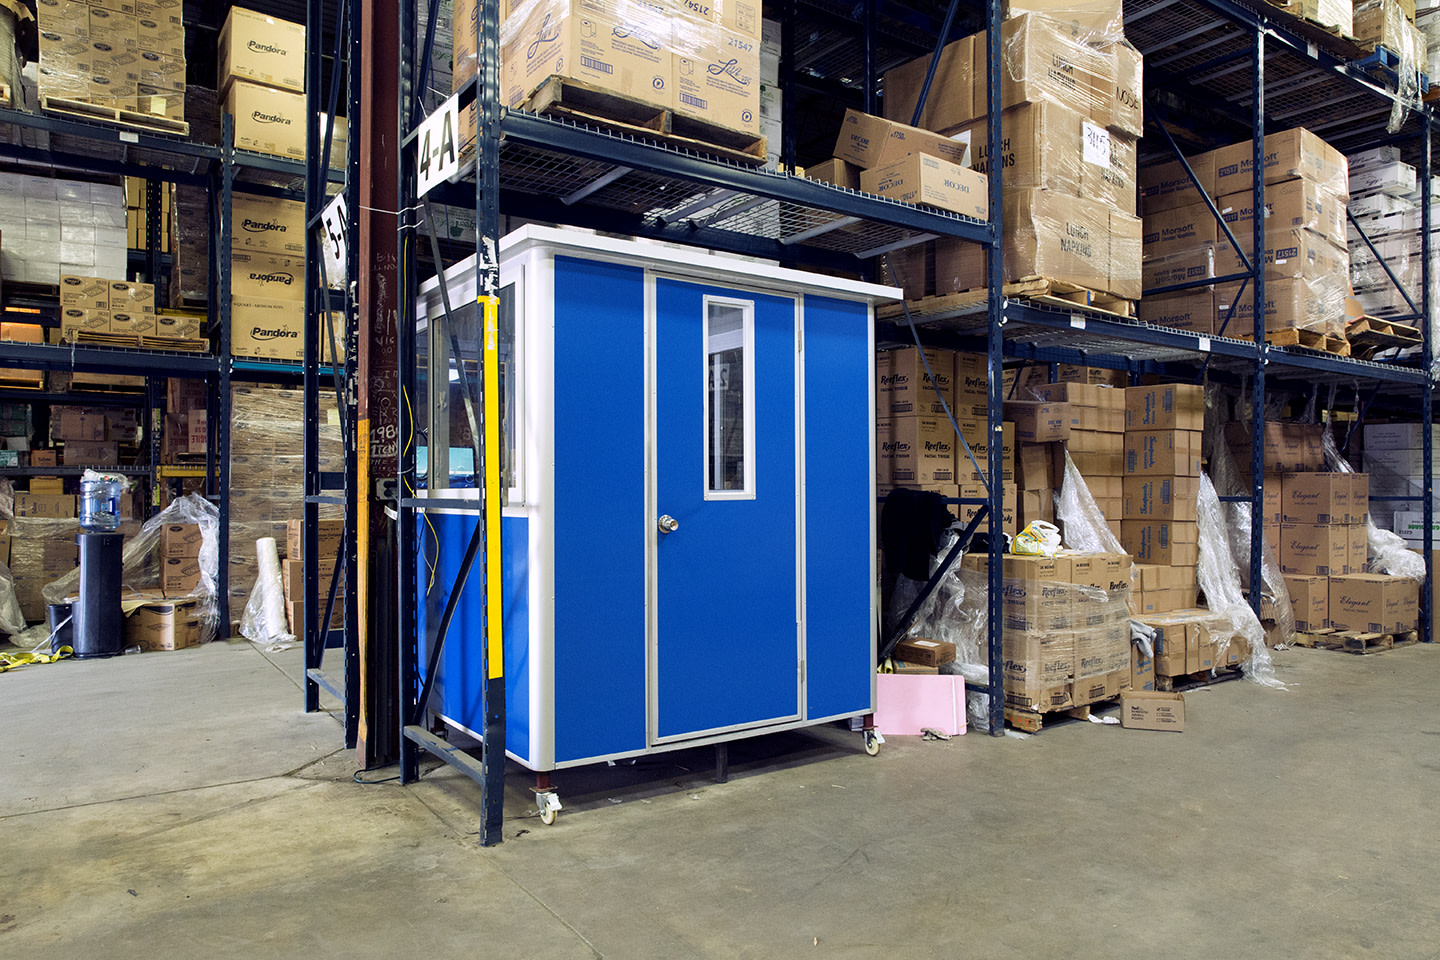 6x8 Modular Office in Albany, NY with Caster Wheels, Swing Door, Sliding Windows, and Baseboard Heaters